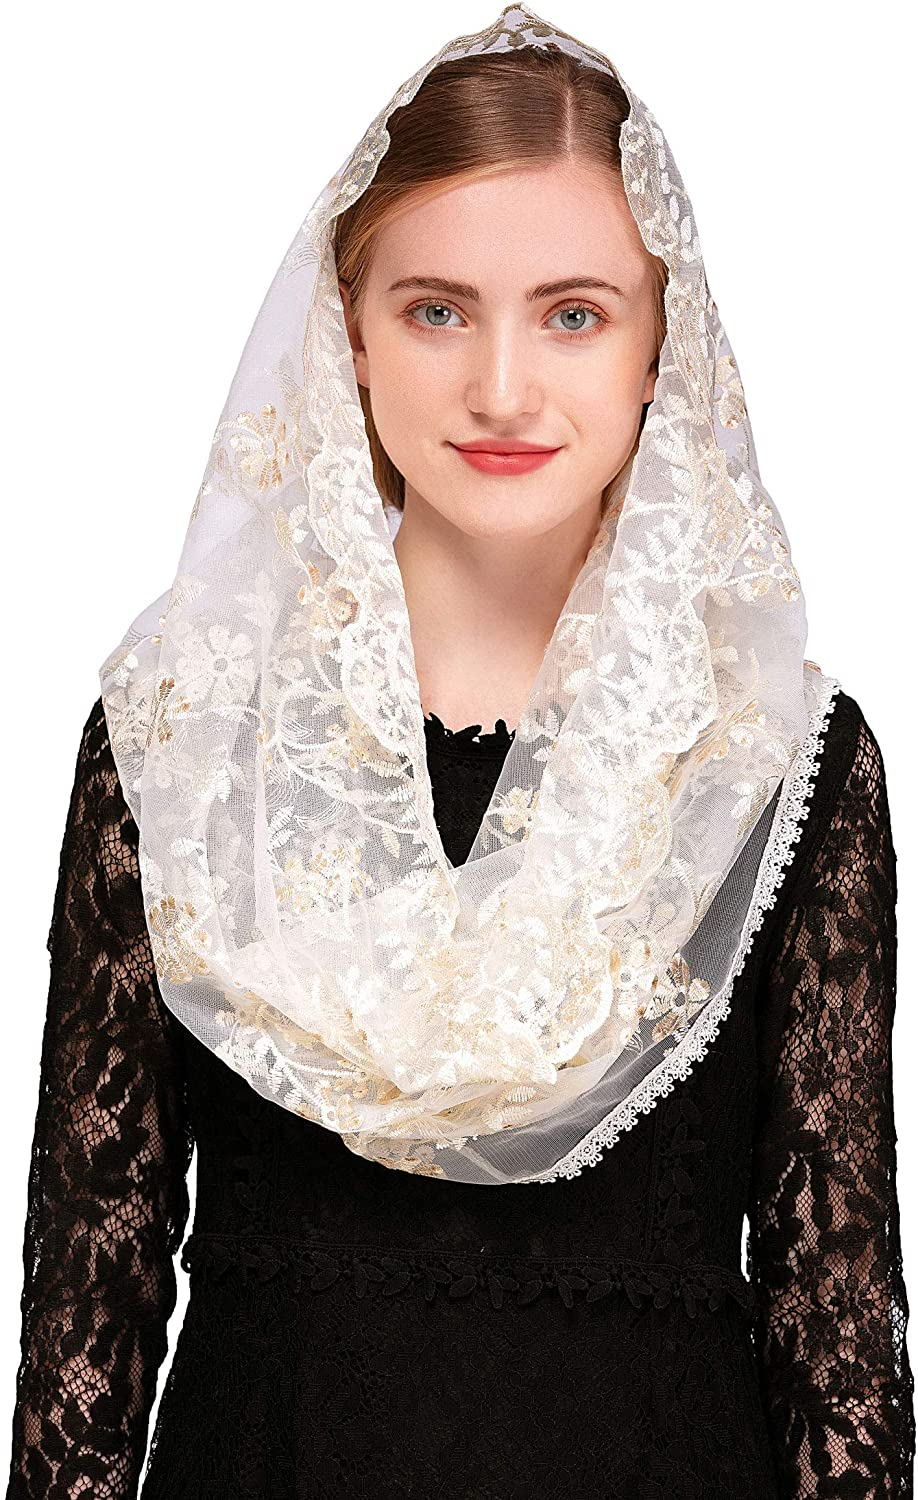 Pamor Chapel Veil Mantilla Veils Latin Mass Gold White Embroidered Head Covering Lace Scarf